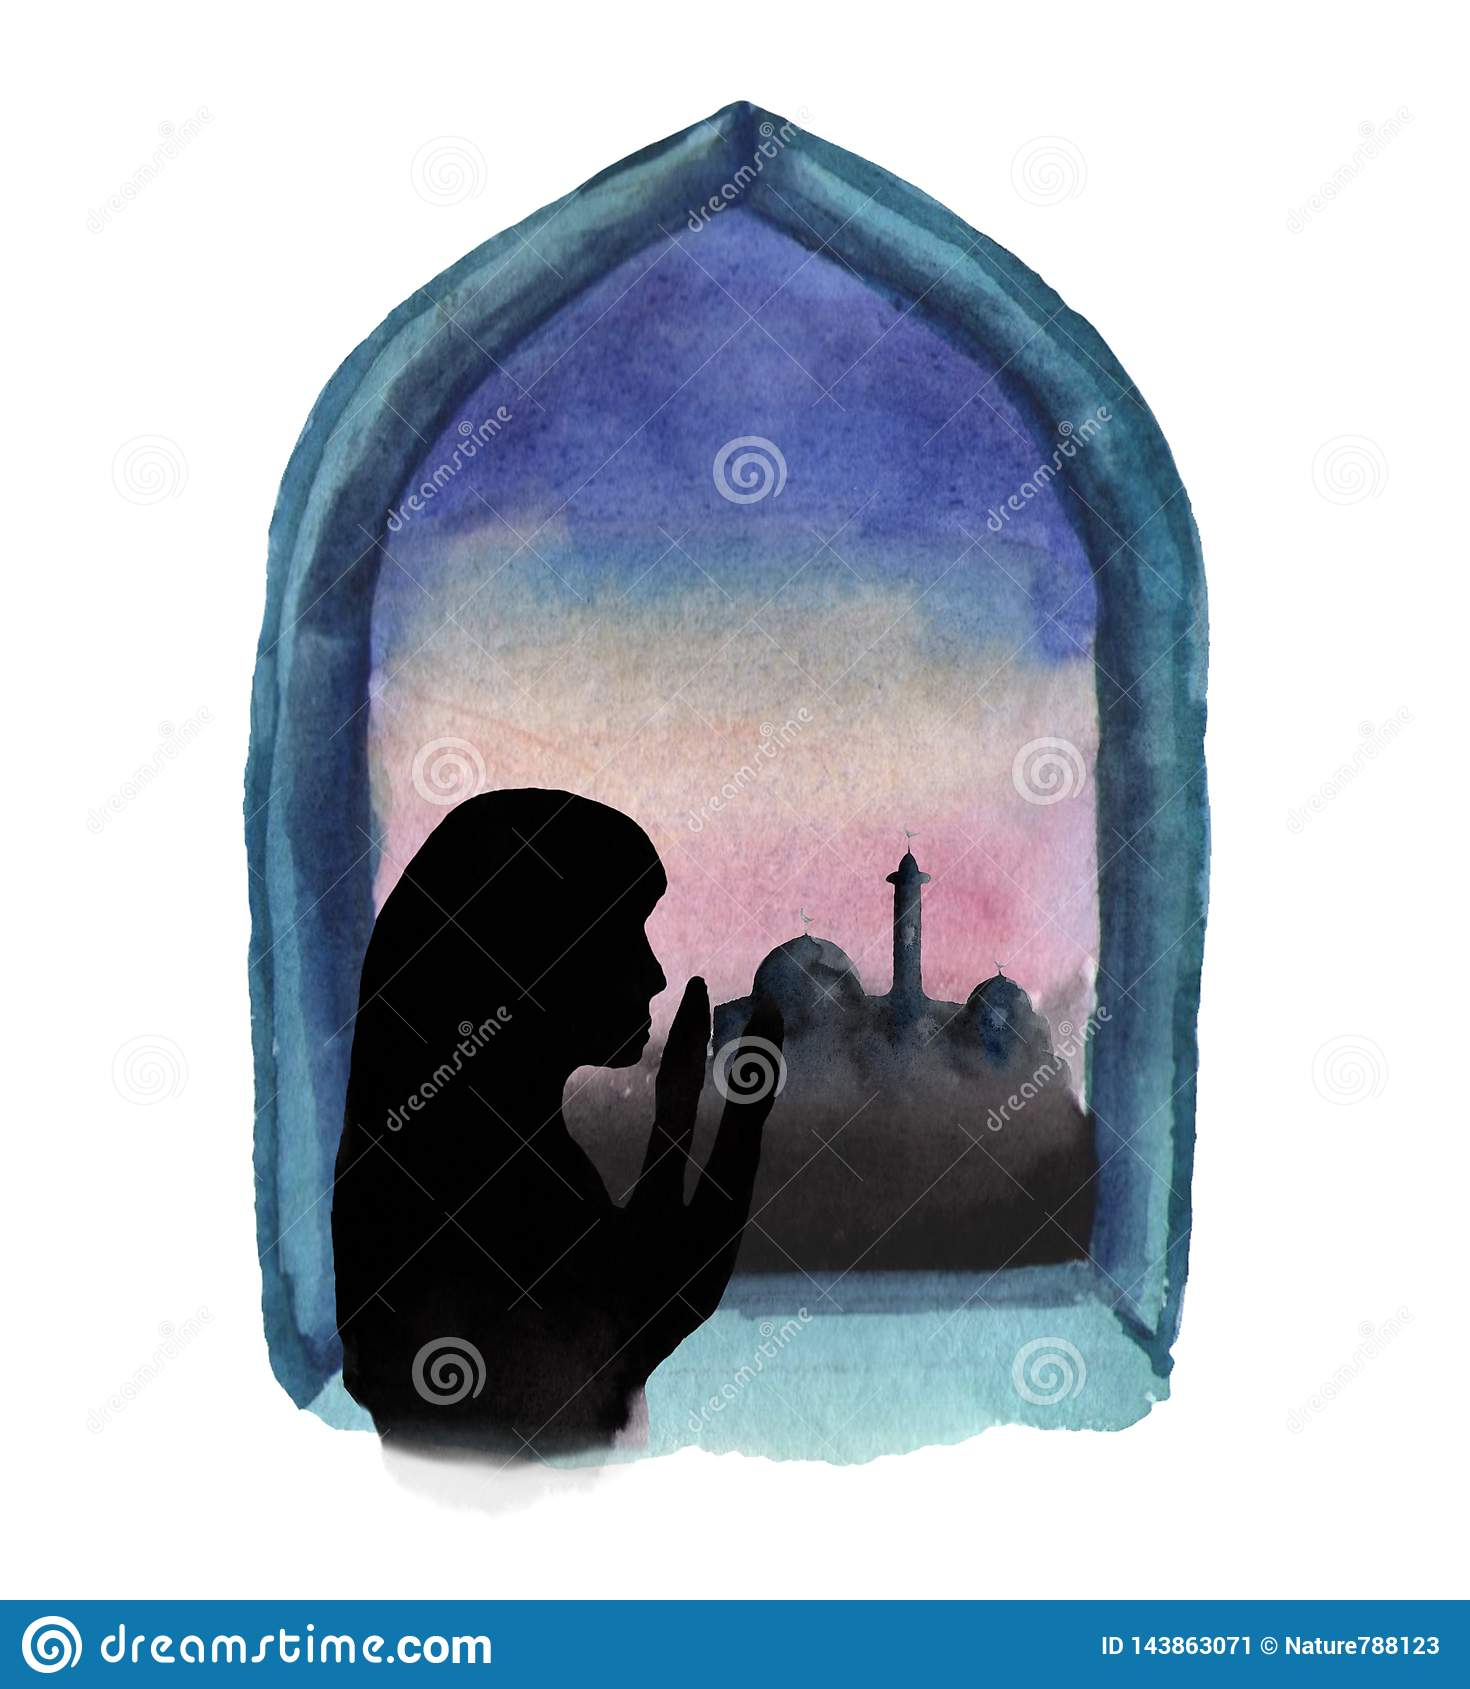 Watercolor illustration of a window in which a mosque and sunrise are visible, a Muslim woman prays, Ramadan